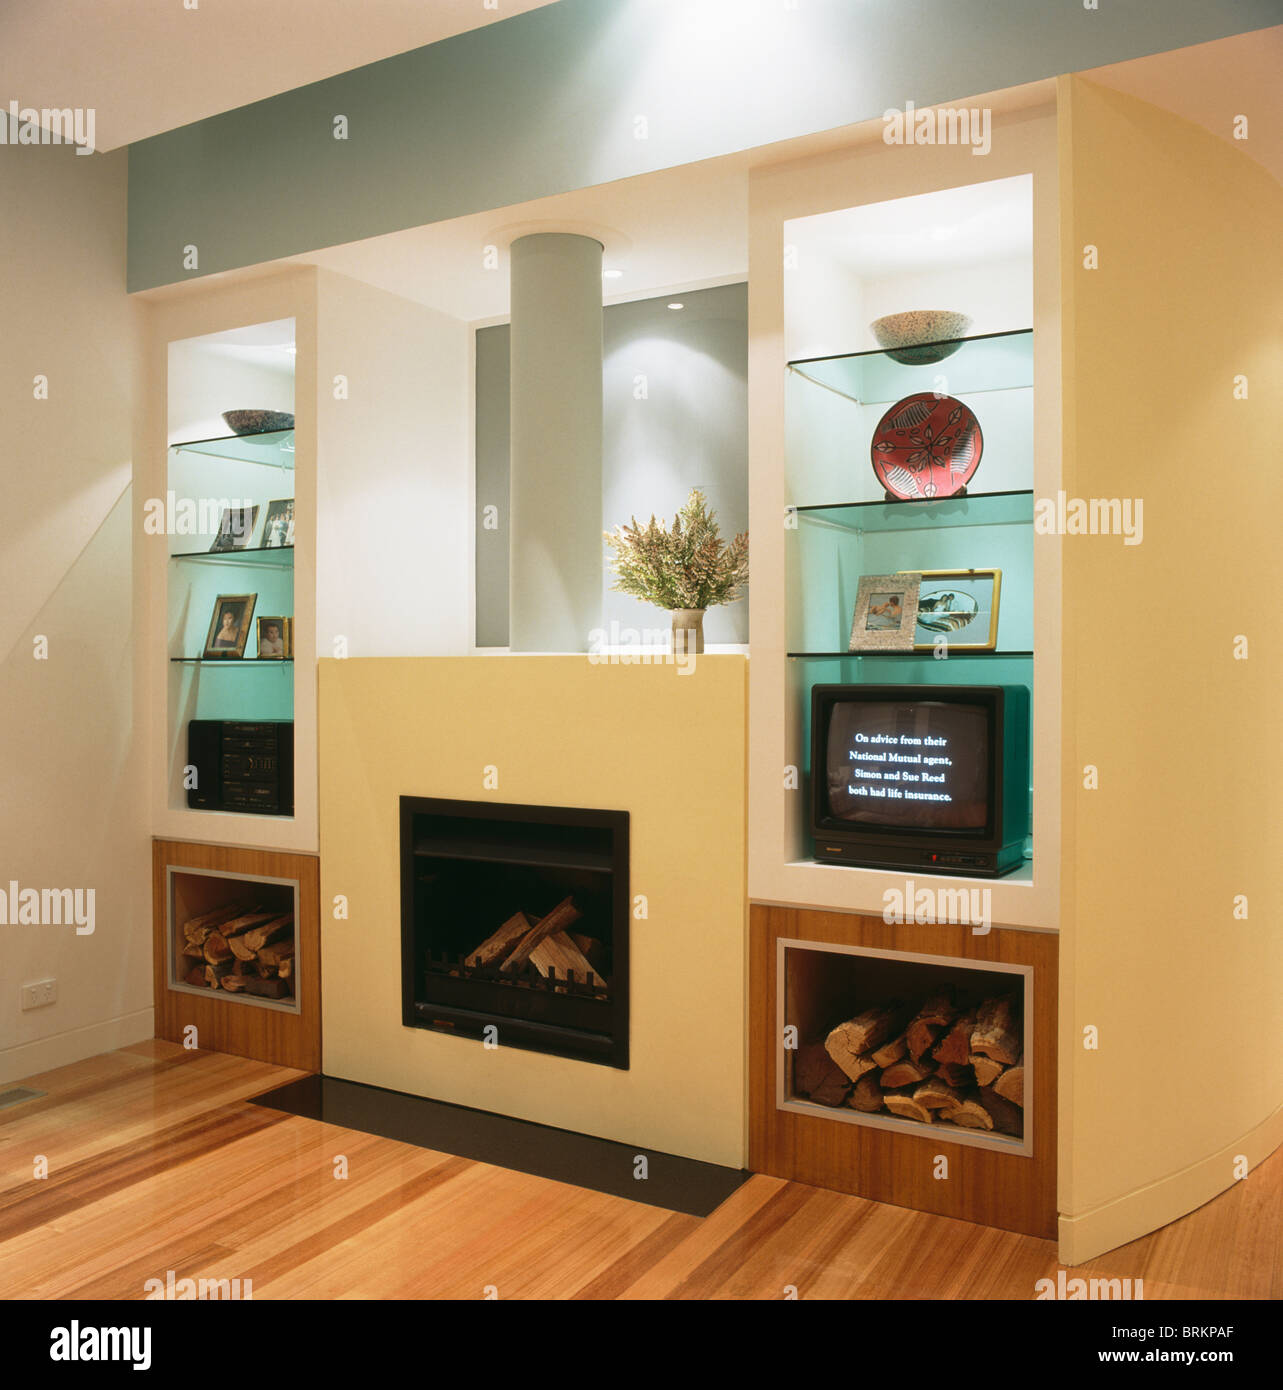 Logs Stored On Either Side Of Modern Fireplace In Wall With Lighting Above Glass  Shelves In Alcoves In Modern Living Room